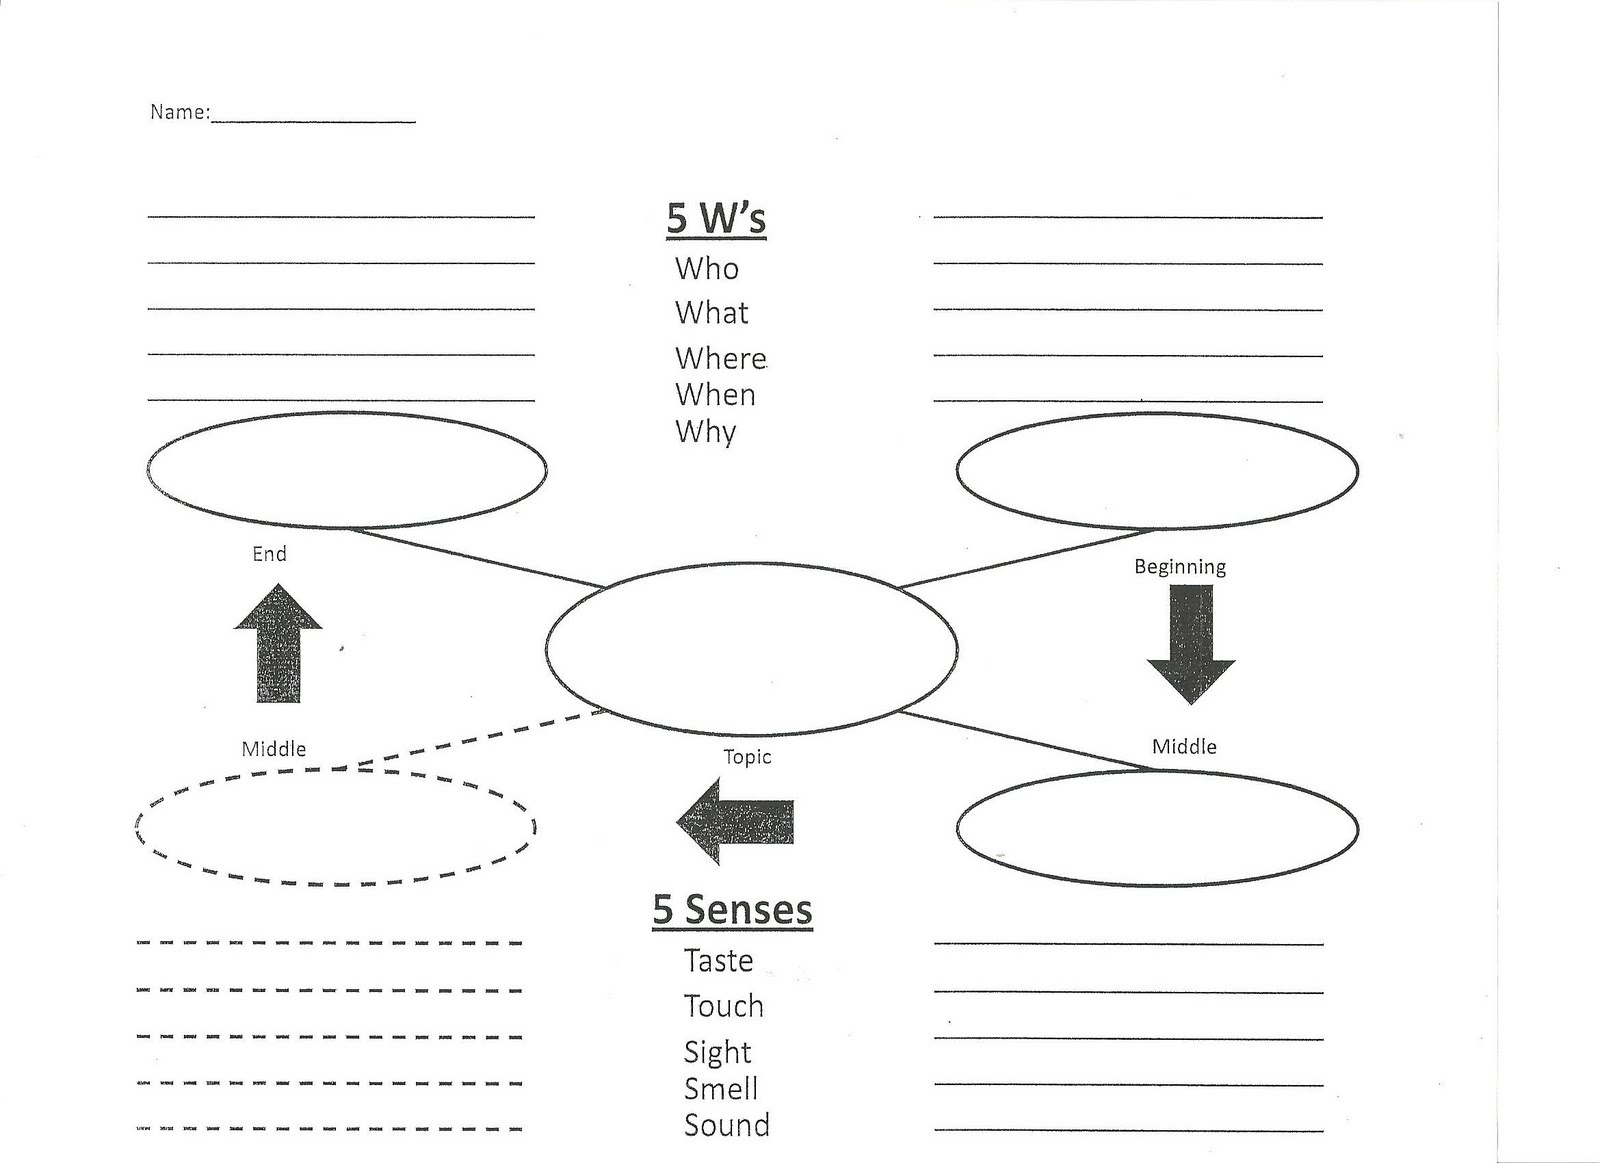 letter writing graphic organizer Friend who moved away 2 worksheets (1 graphic organizer, 1 letter outline) for writing a friendly letter to a friend who has moved to a new state.